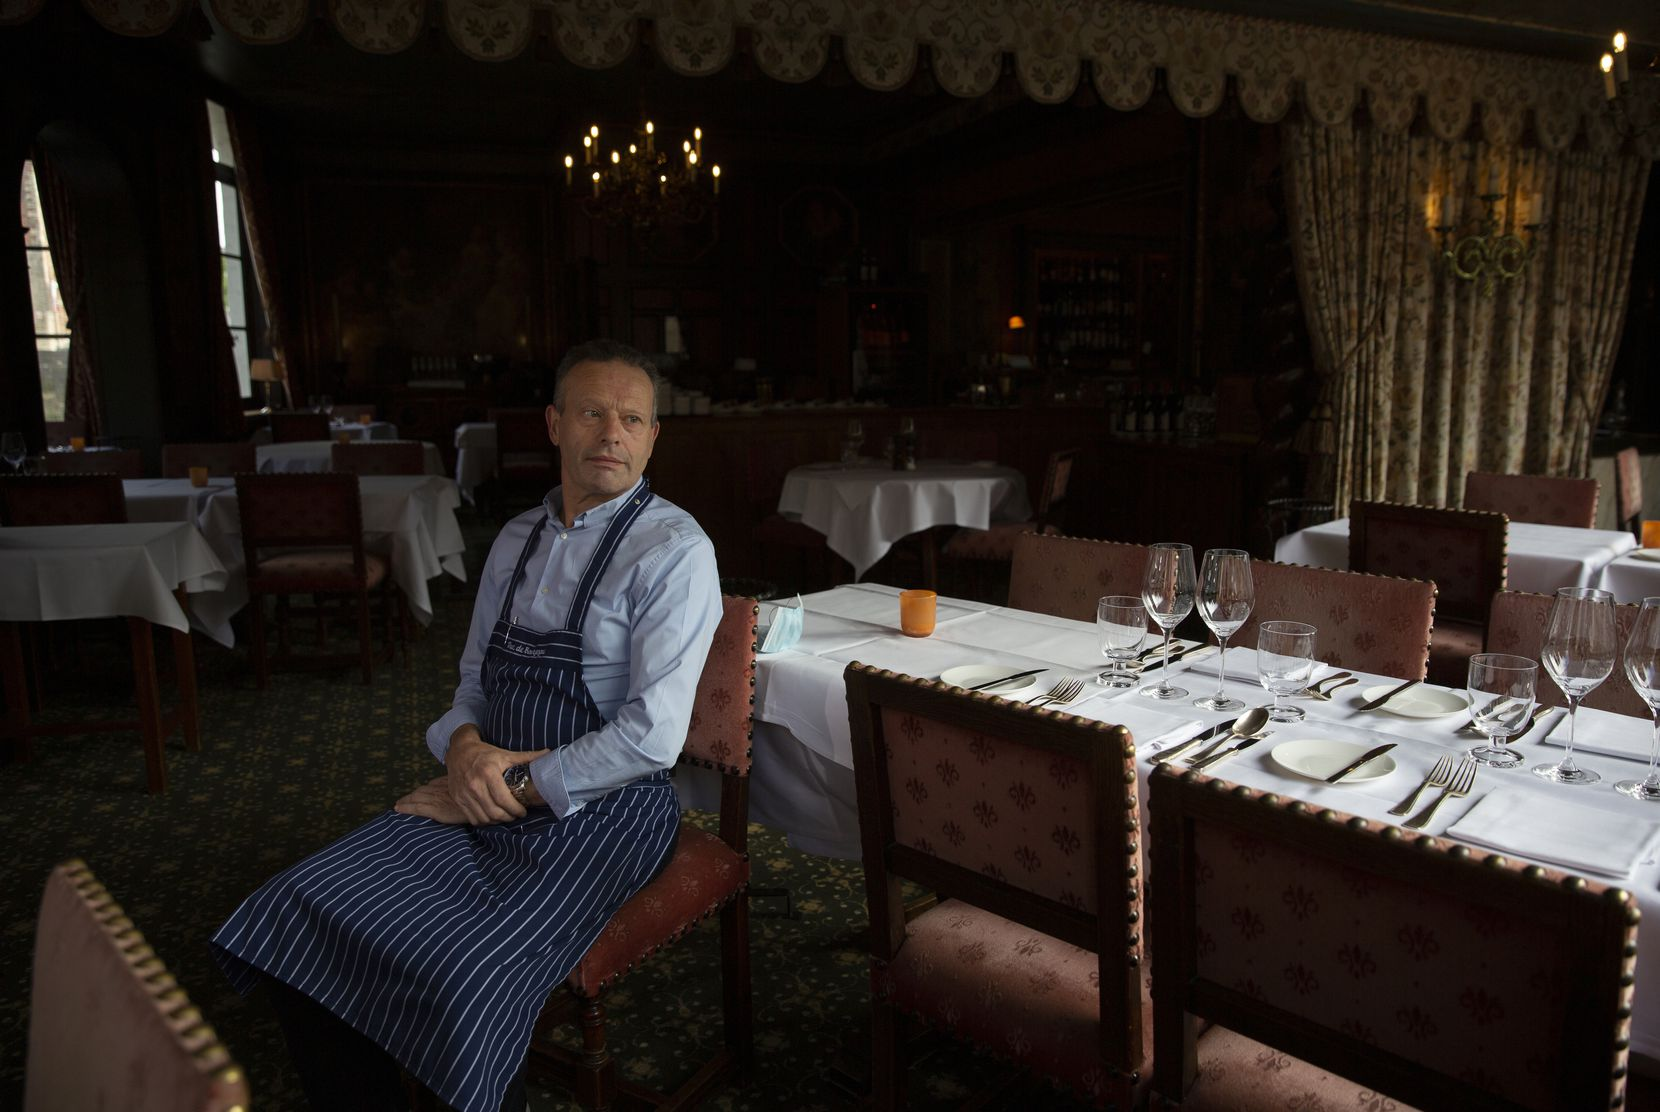 Restaurant co-owner Luc Broes sits inside his empty dining room at the Duc de Bourgogne restaurant in Bruges, Belgium.